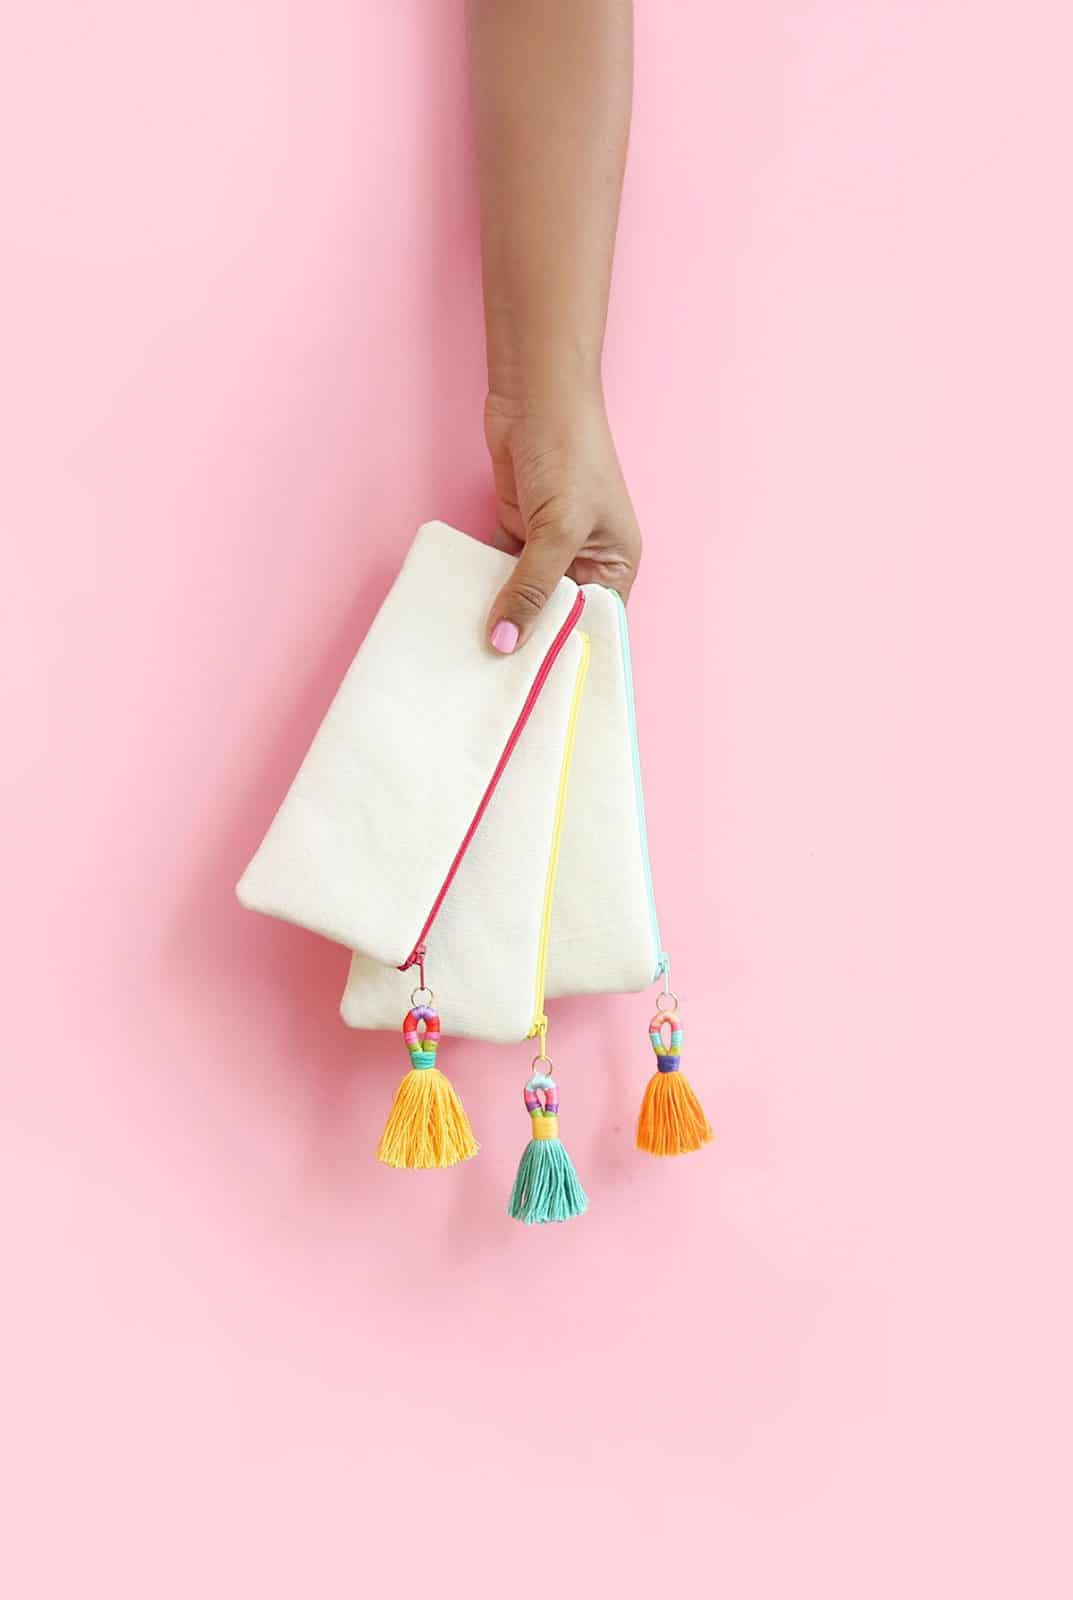 DIY Purse Tassels